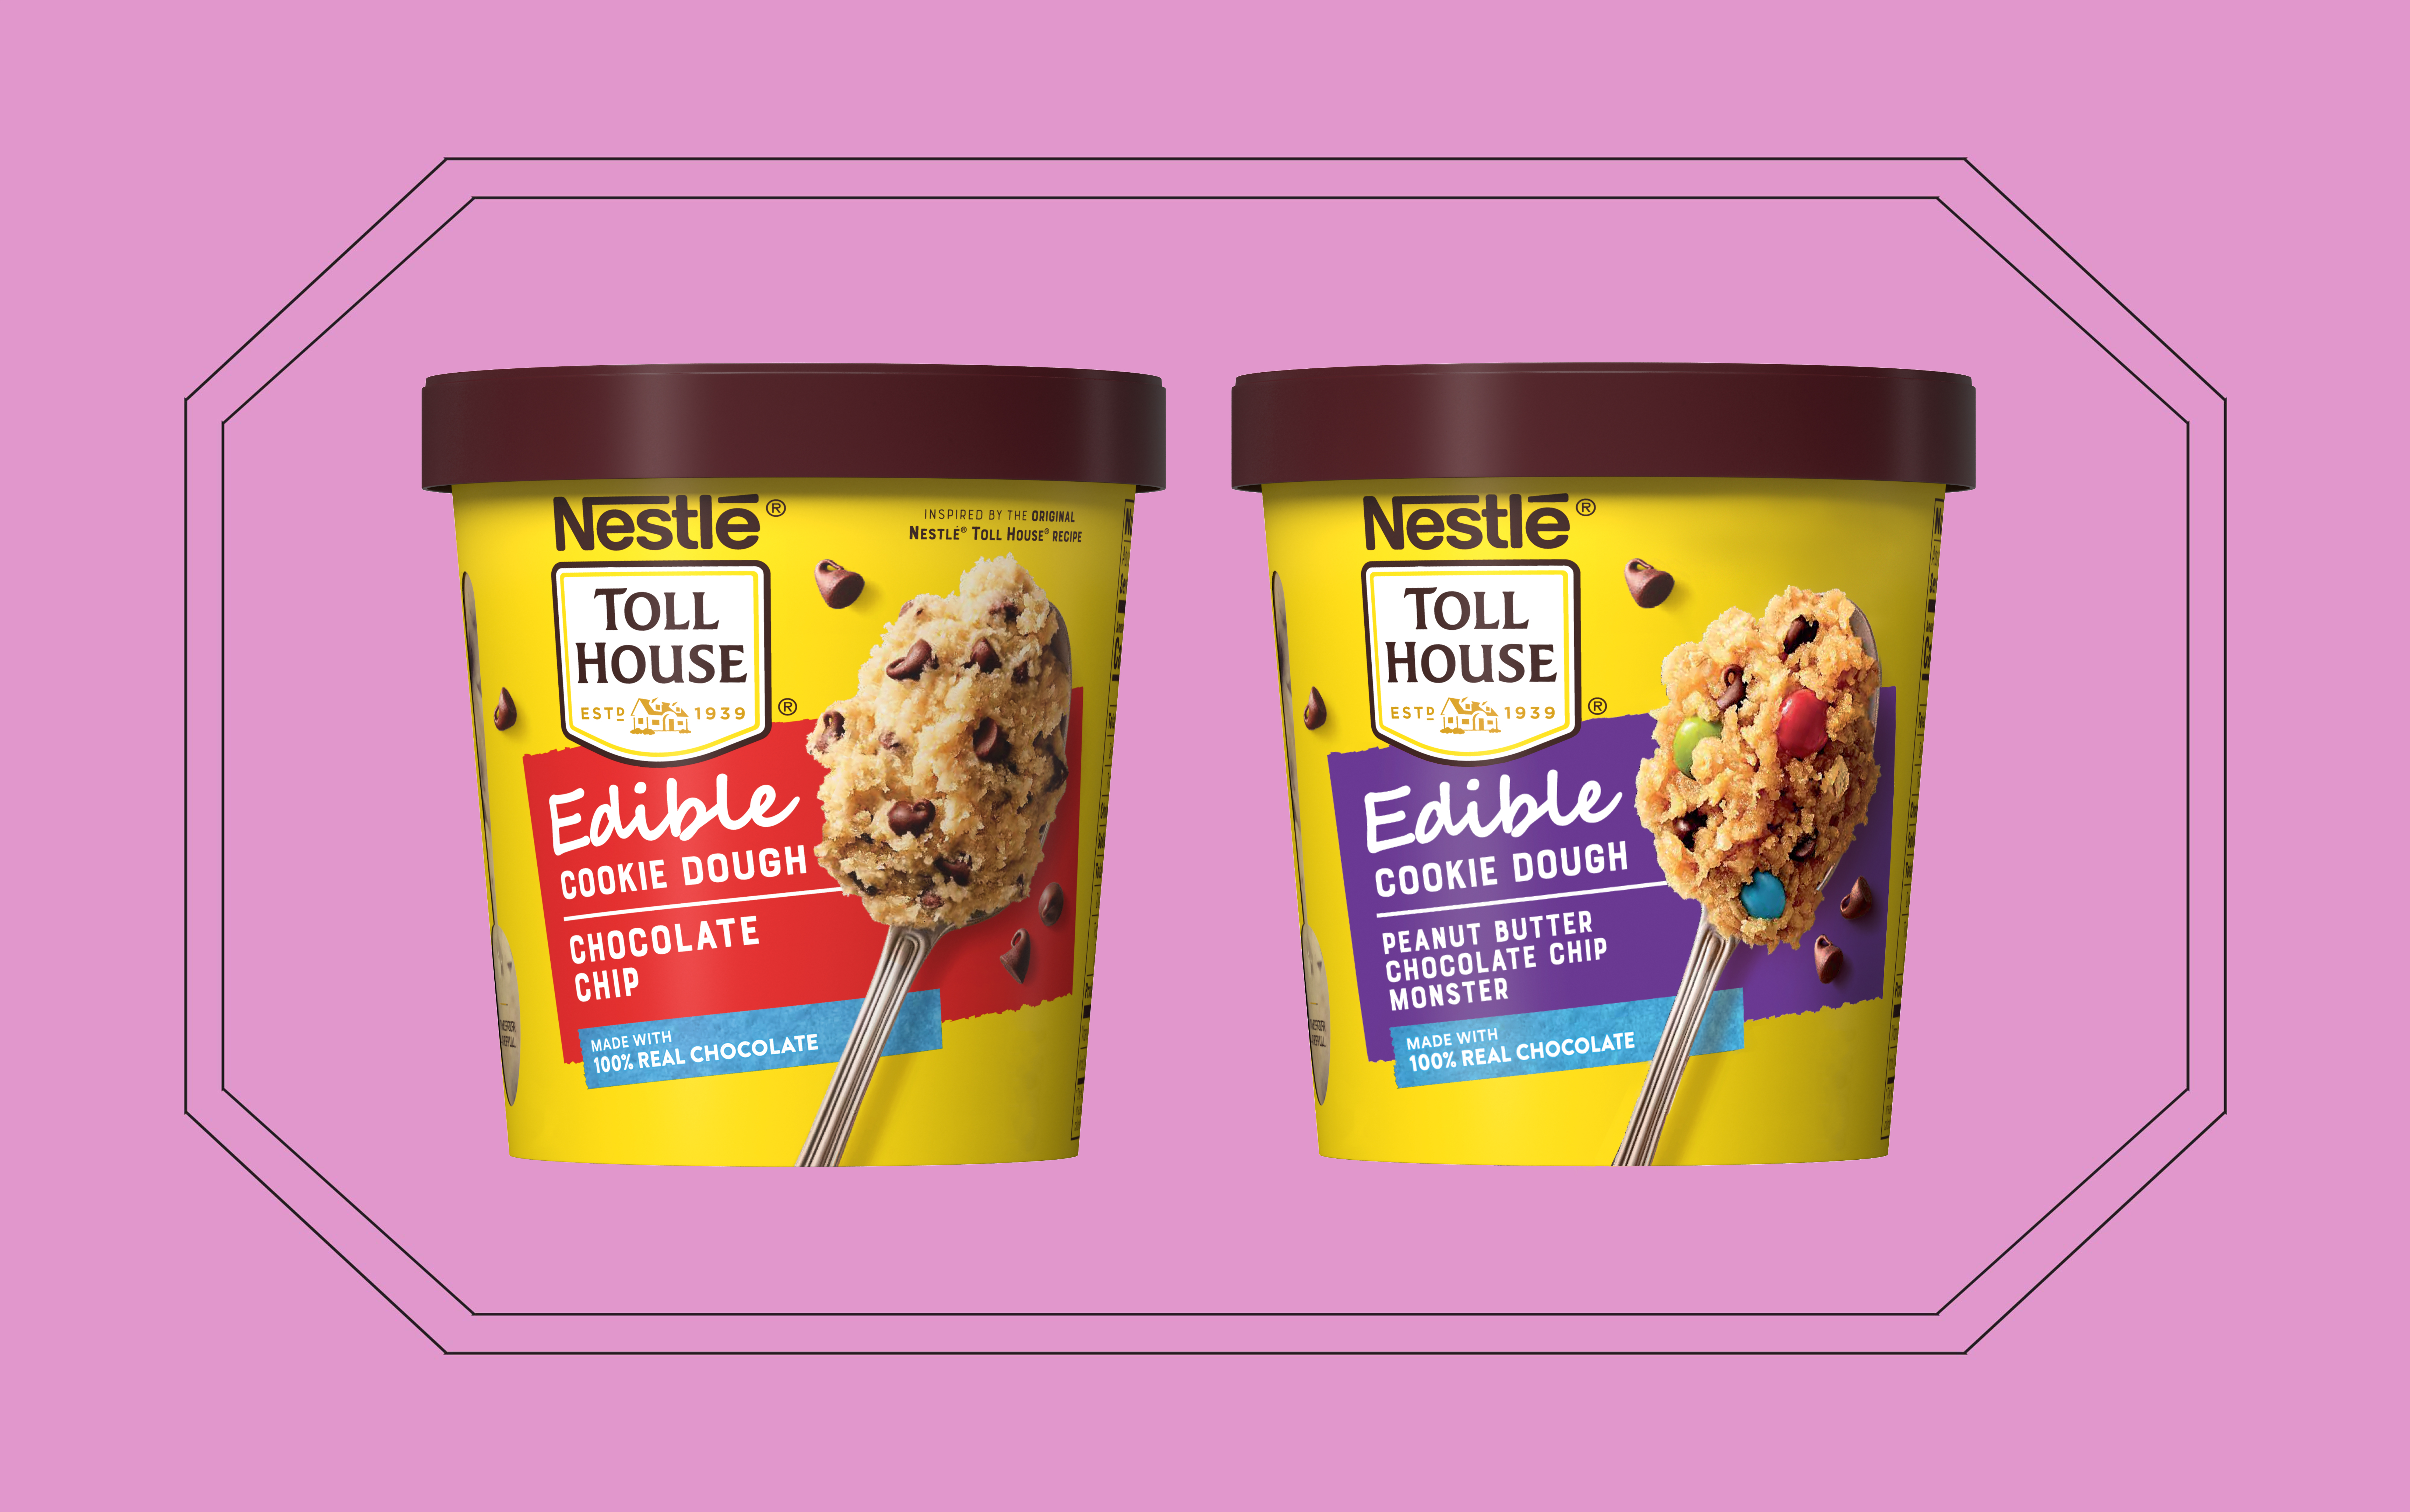 Nestlé Toll House Is Finally Making Edible Cookie Dough That's Safe to Eat